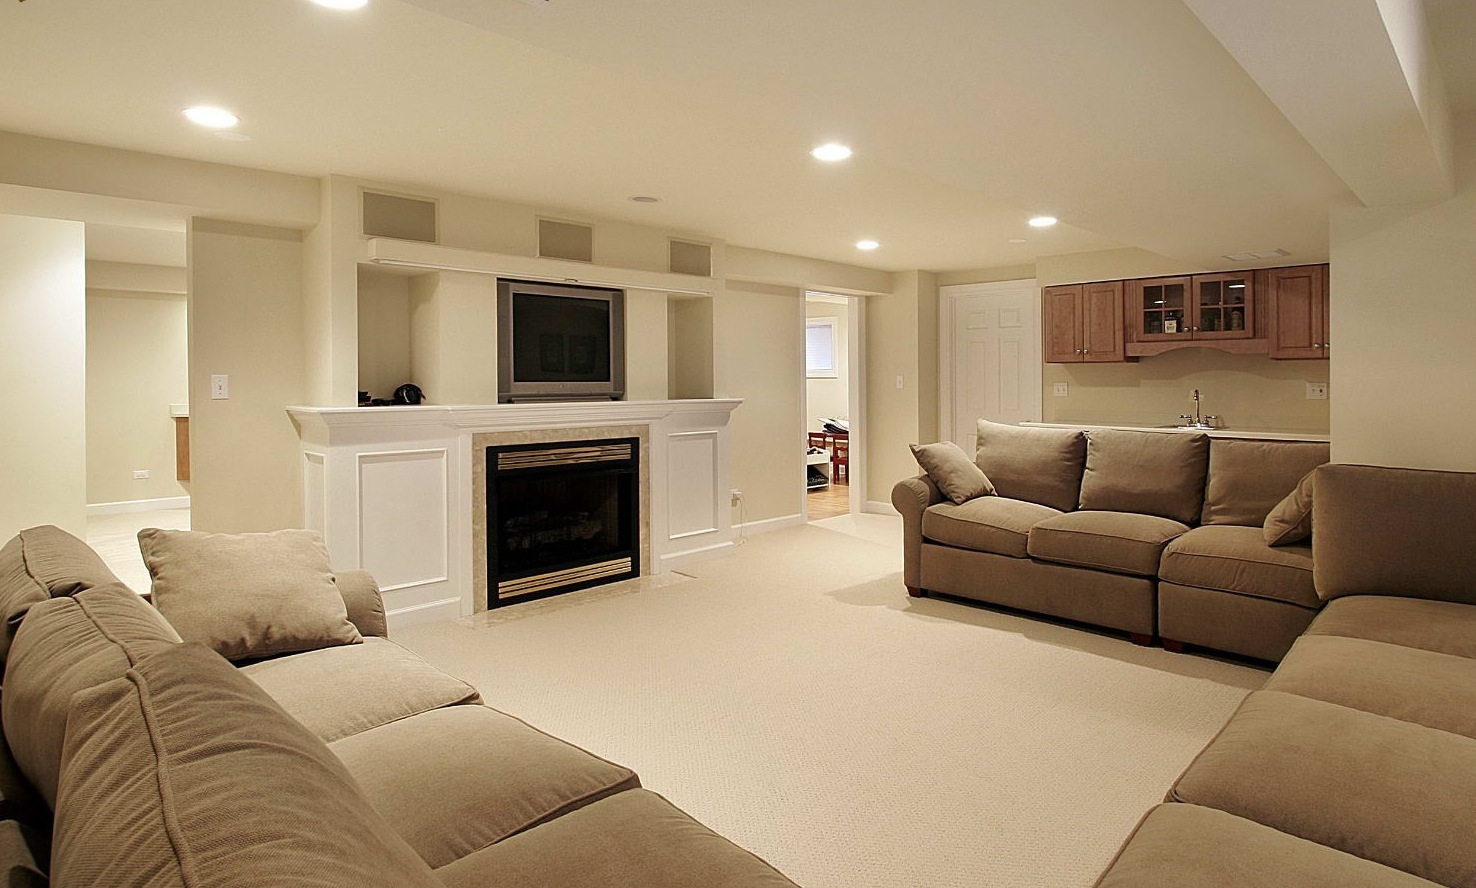 30 basement remodeling ideas inspiration - Basement Design Ideas Plans